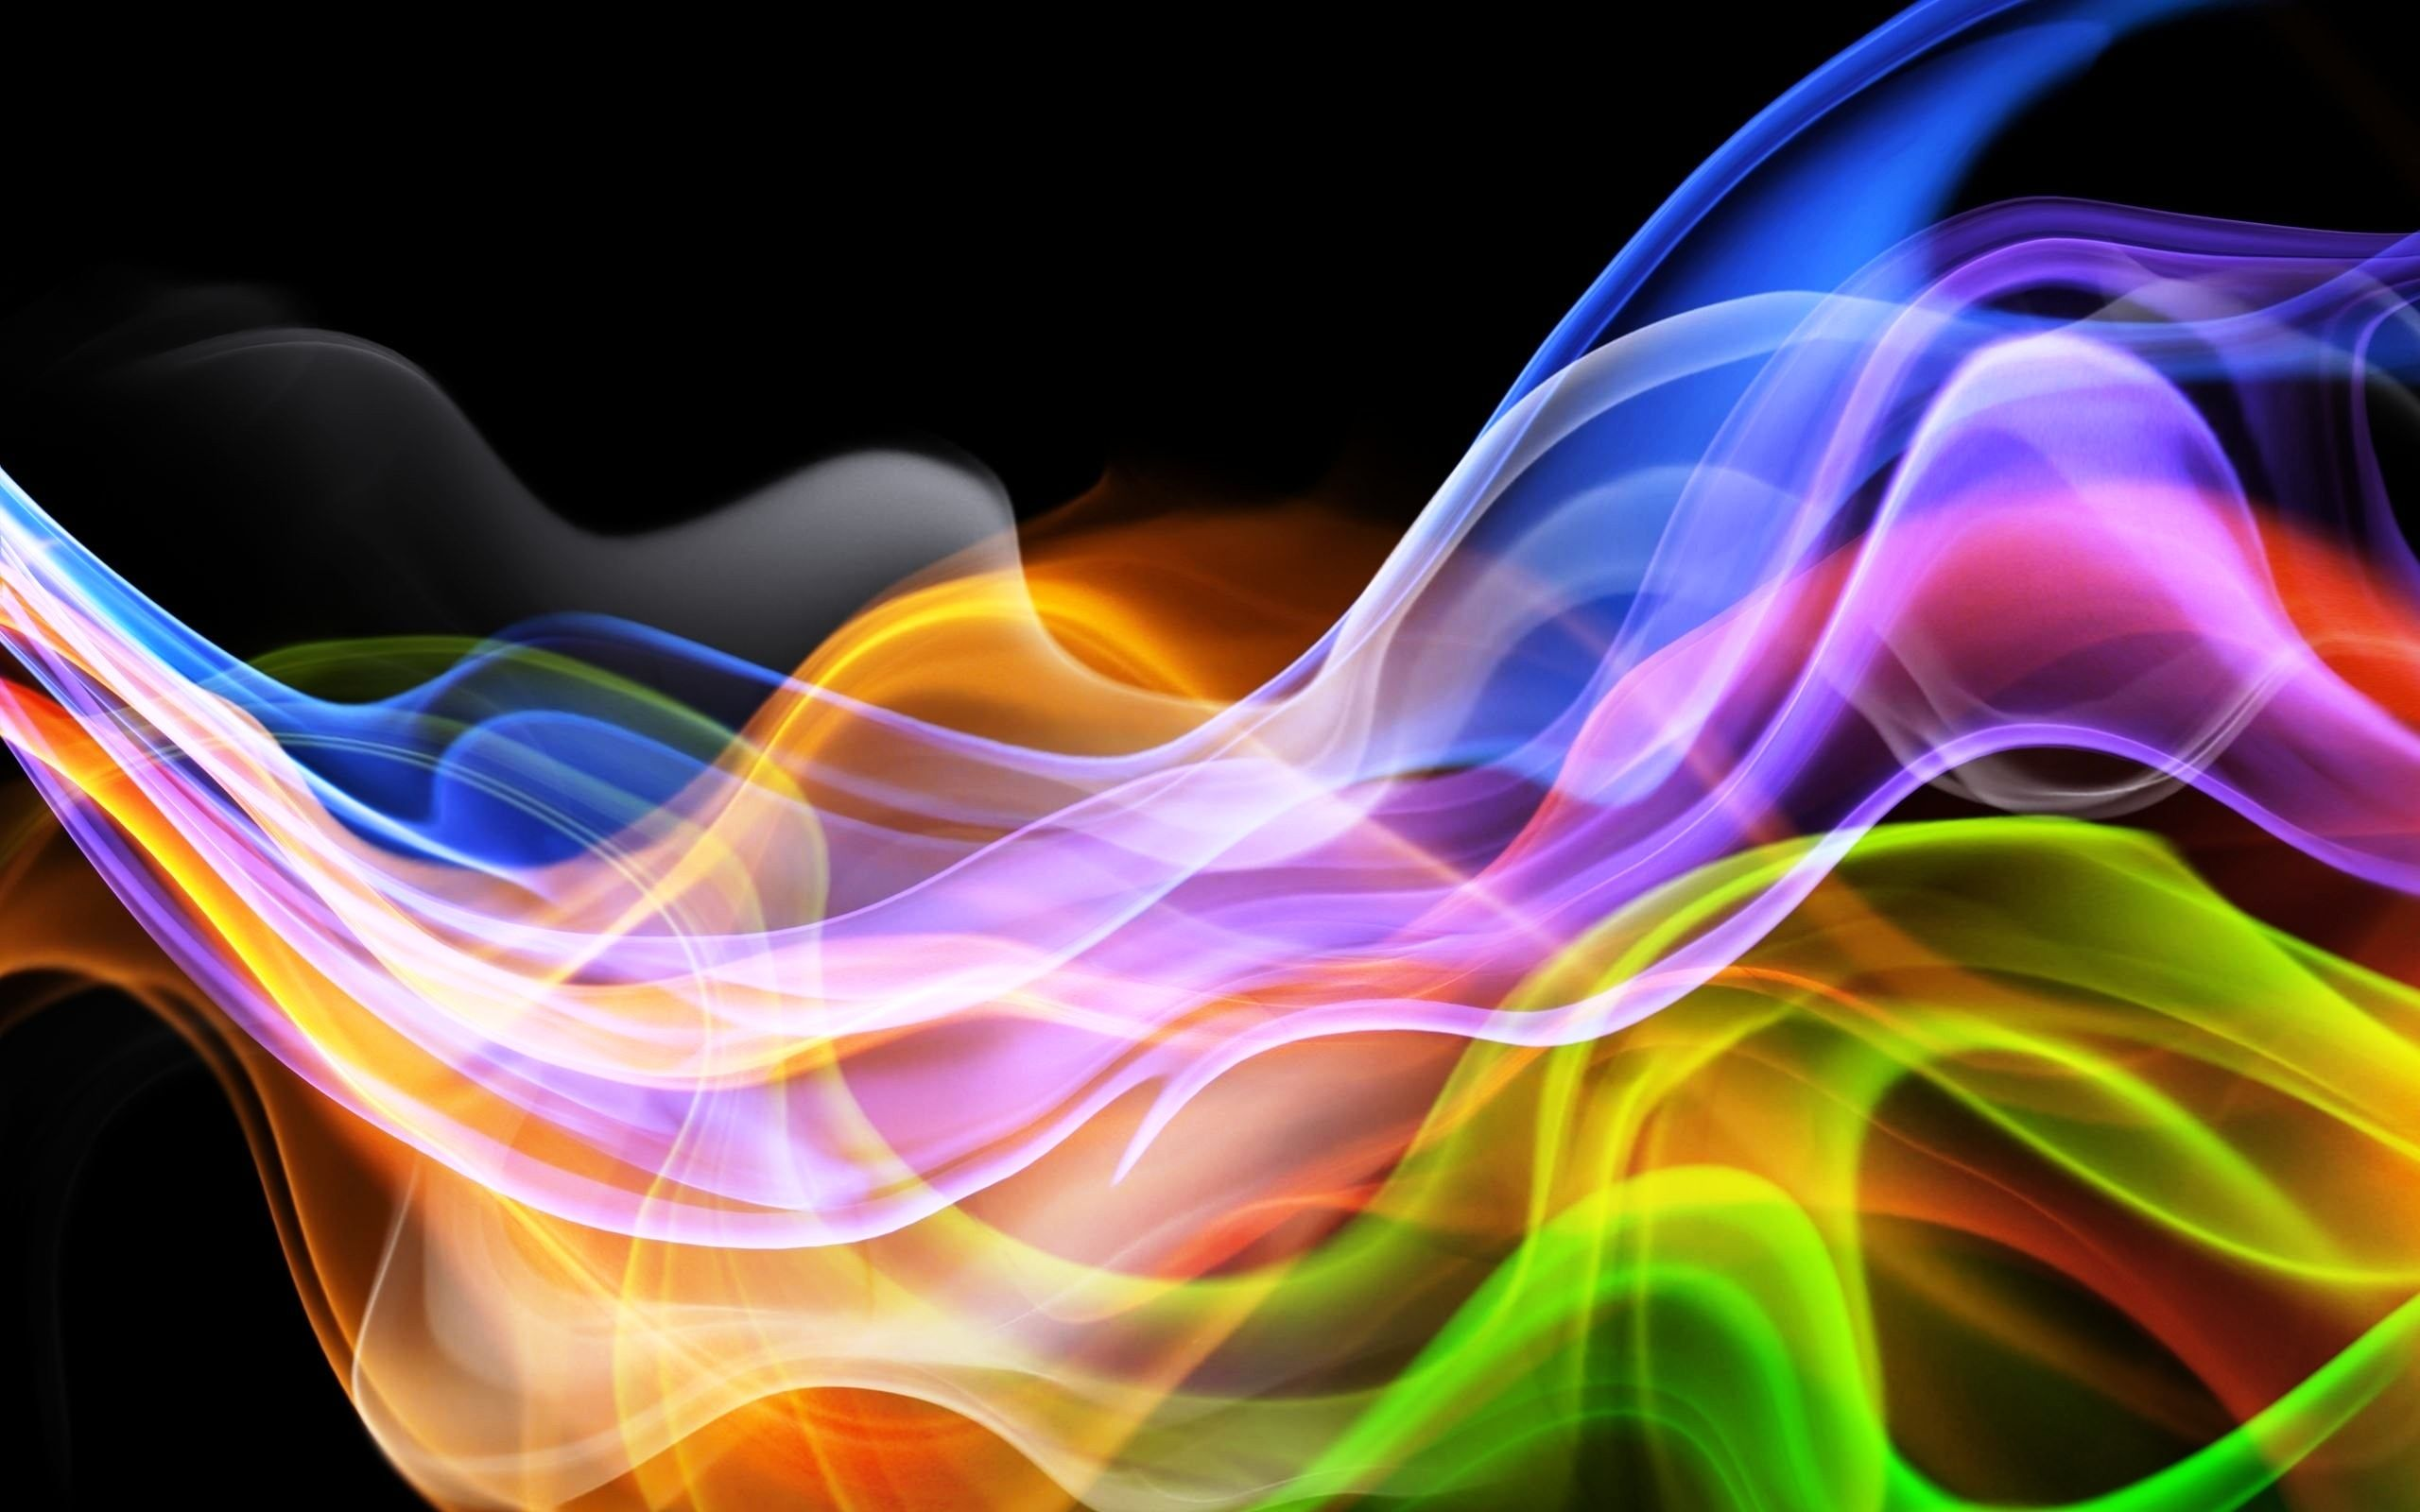 Colorful 3D Abstract Images Wallpaper | RAINBOW ...